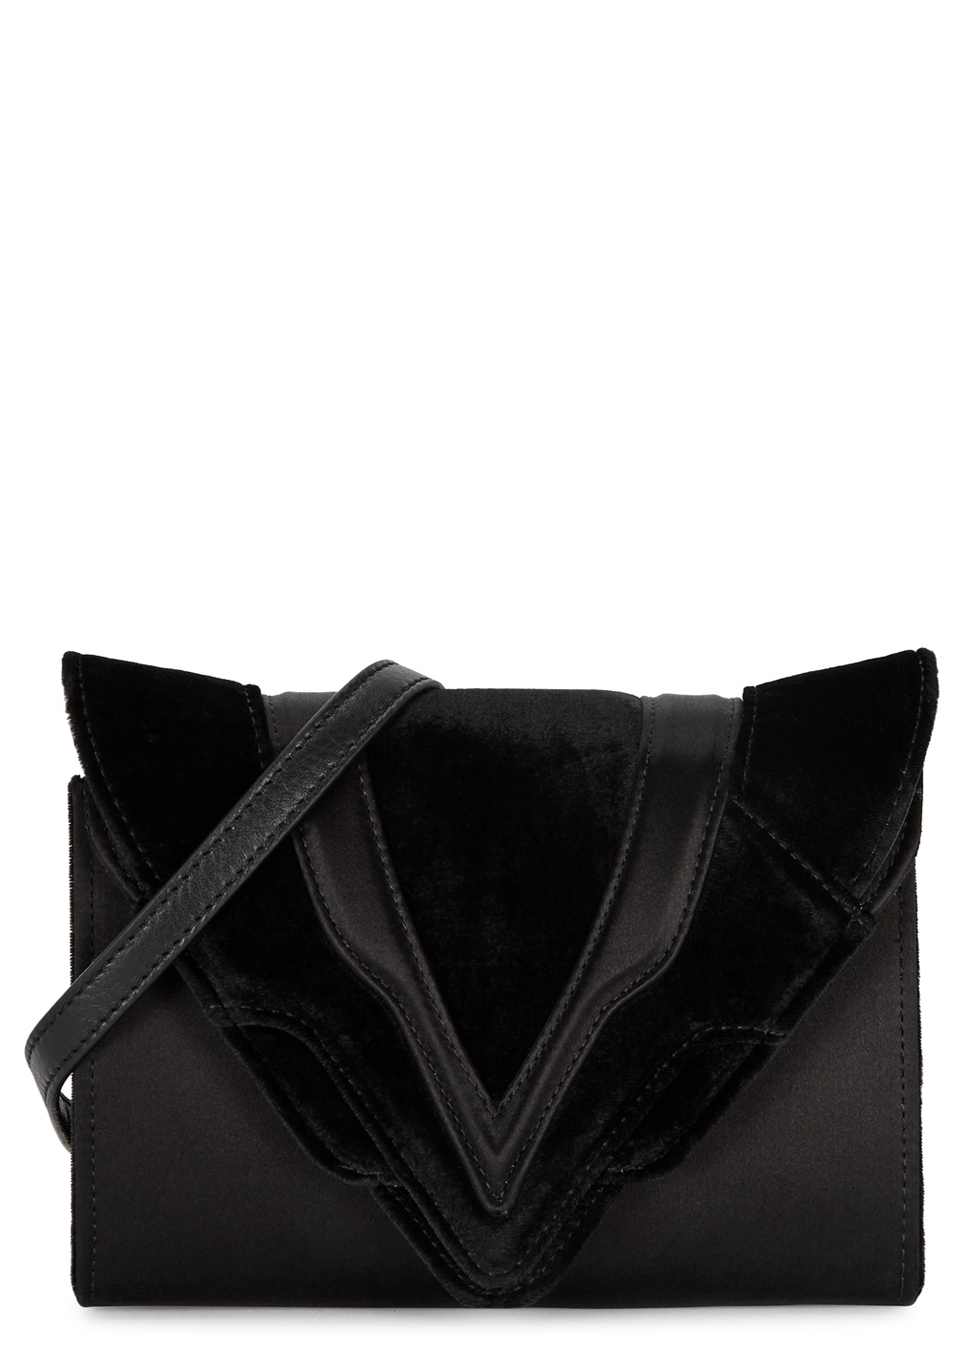 FELINA BLACK VELVET AND SATIN CLUTCH